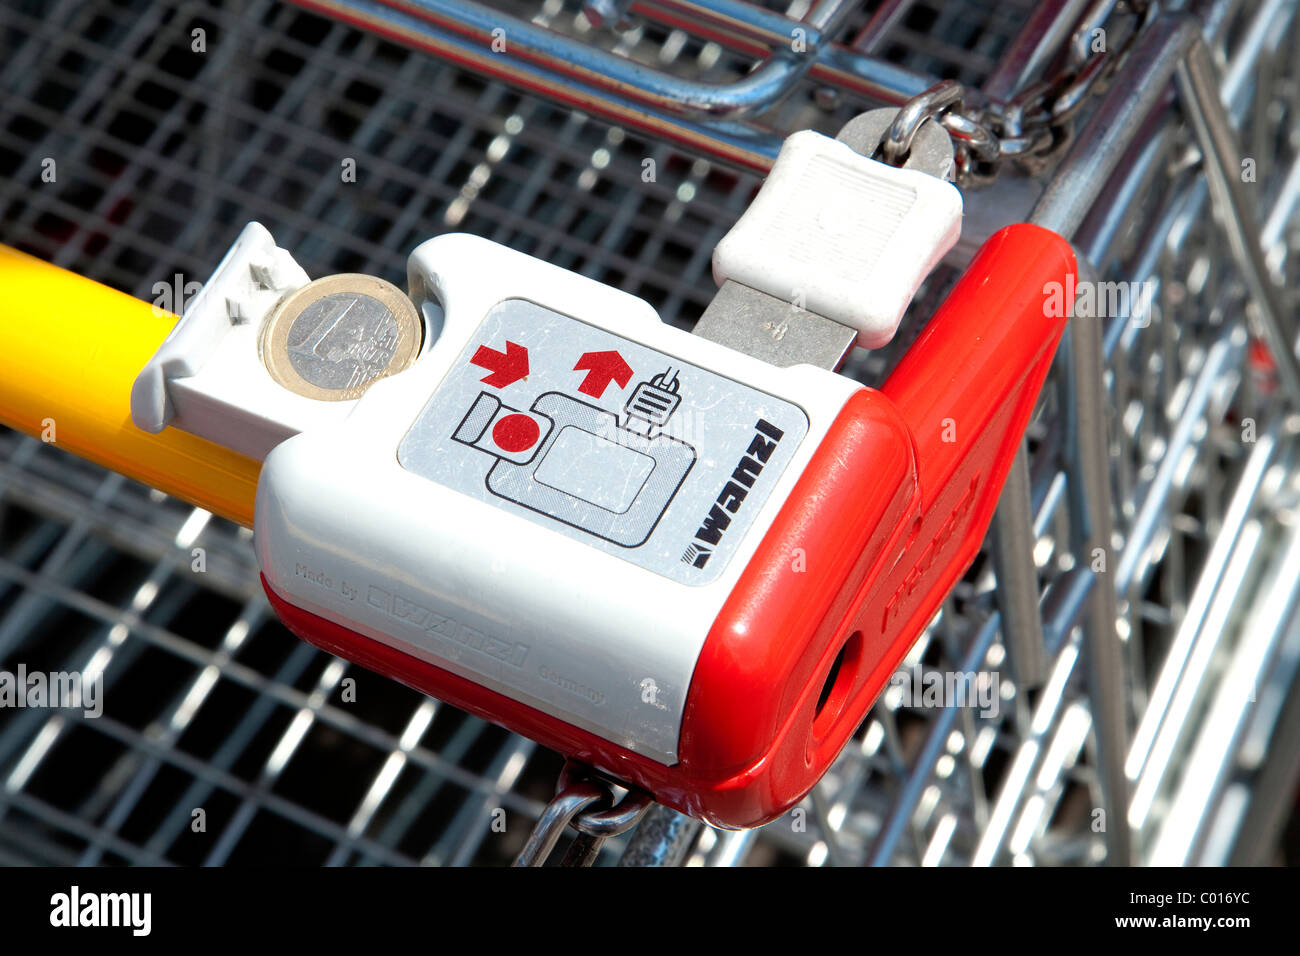 Shopping trolley with one Euro coin - Stock Image